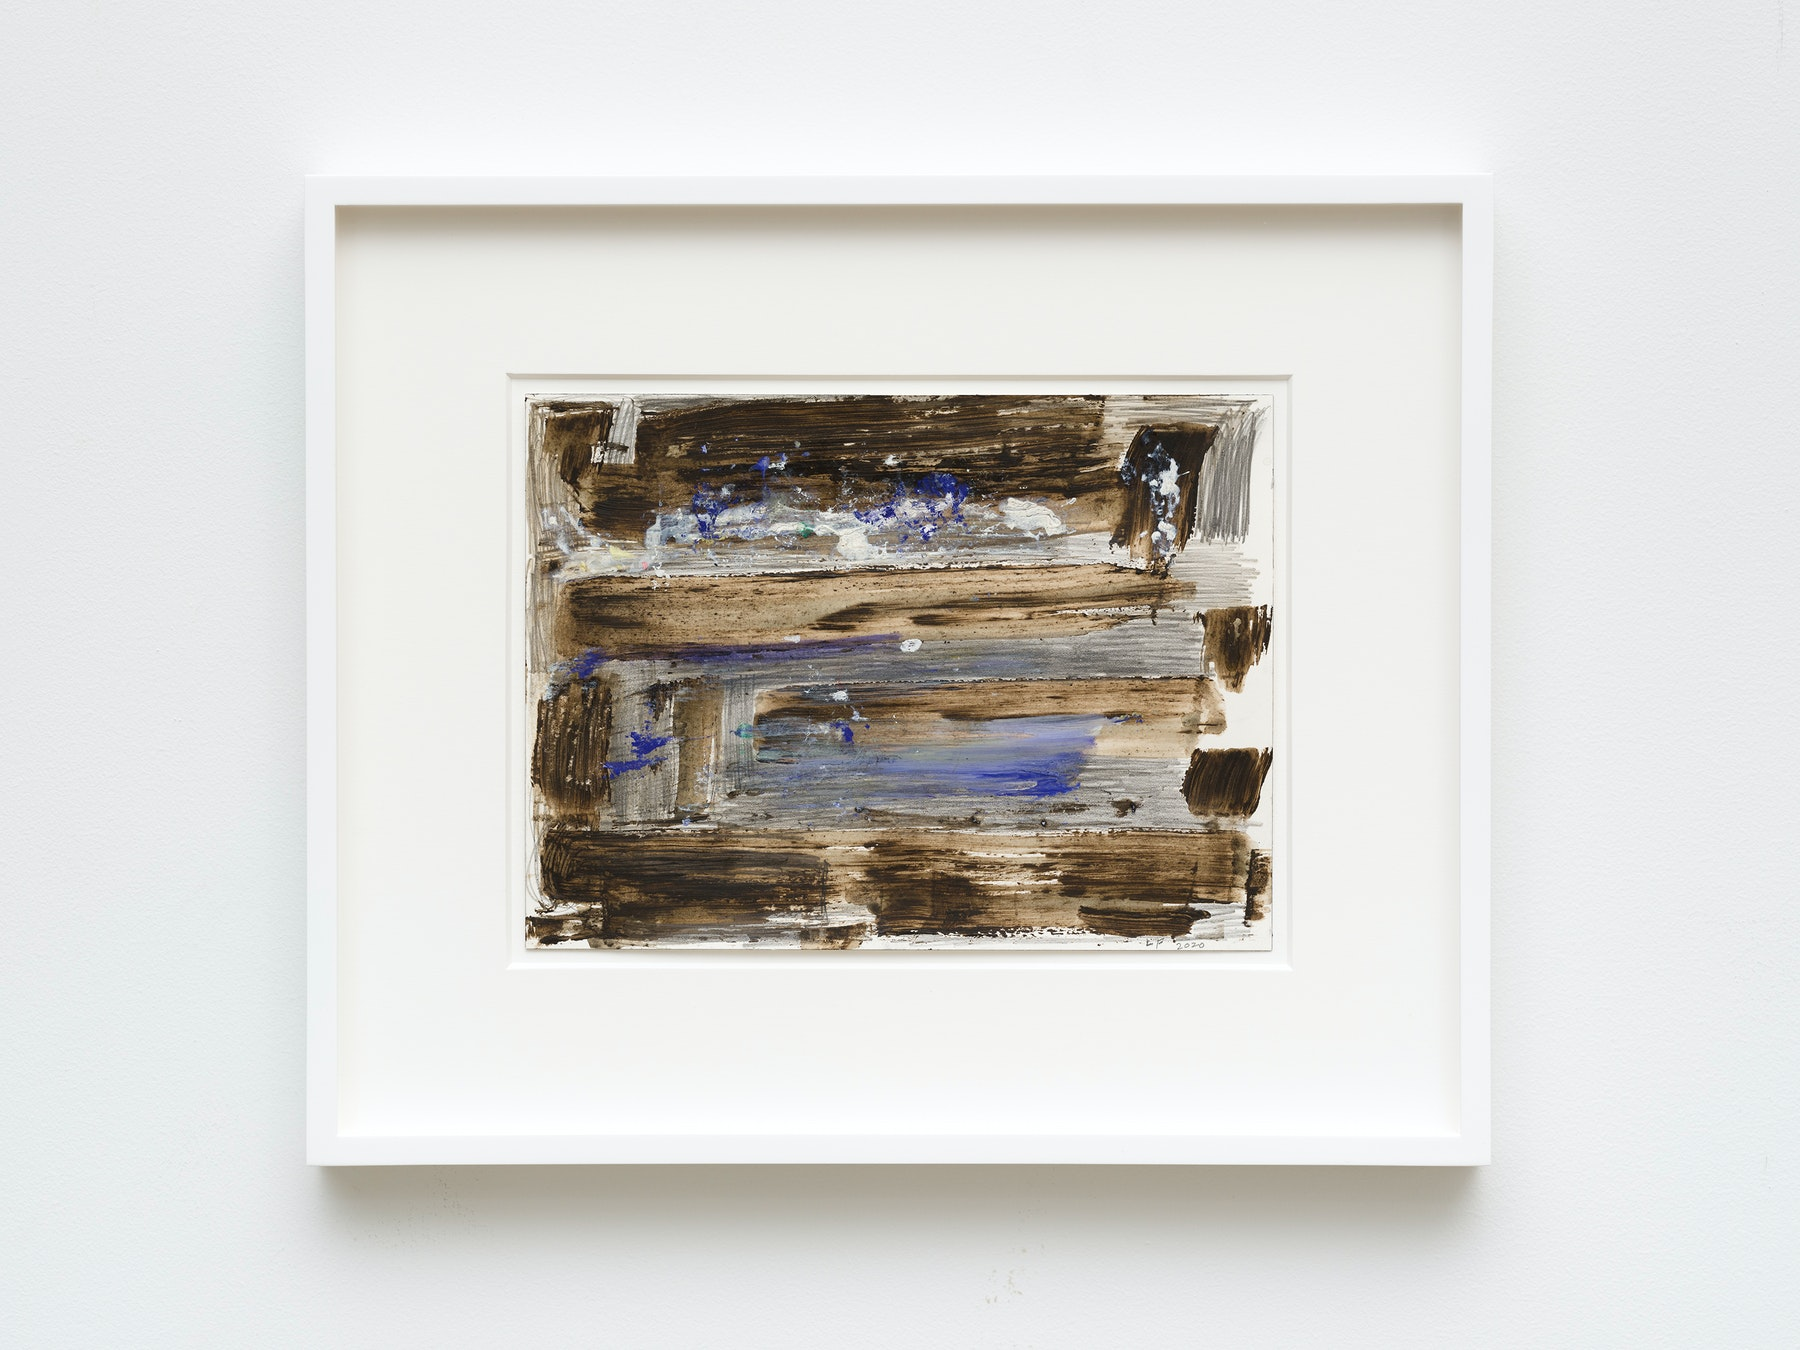 """Louise Fishman """"UNTITLED,"""" 2020 Watercolor, graphite, ProWhite on paper 9"""" x 12"""" [HxW] (22.86 x 30.48 cm) unframed, 16"""" x 19 ¹⁄₄"""" x 1 ¹⁄₂"""" [HxWxD] (40.64 x 48.89 x 3.81 cm) framed Inventory #FIS166 Courtesy of the artist and Vielmetter Los Angeles Photo credit: Jeff Mclane"""